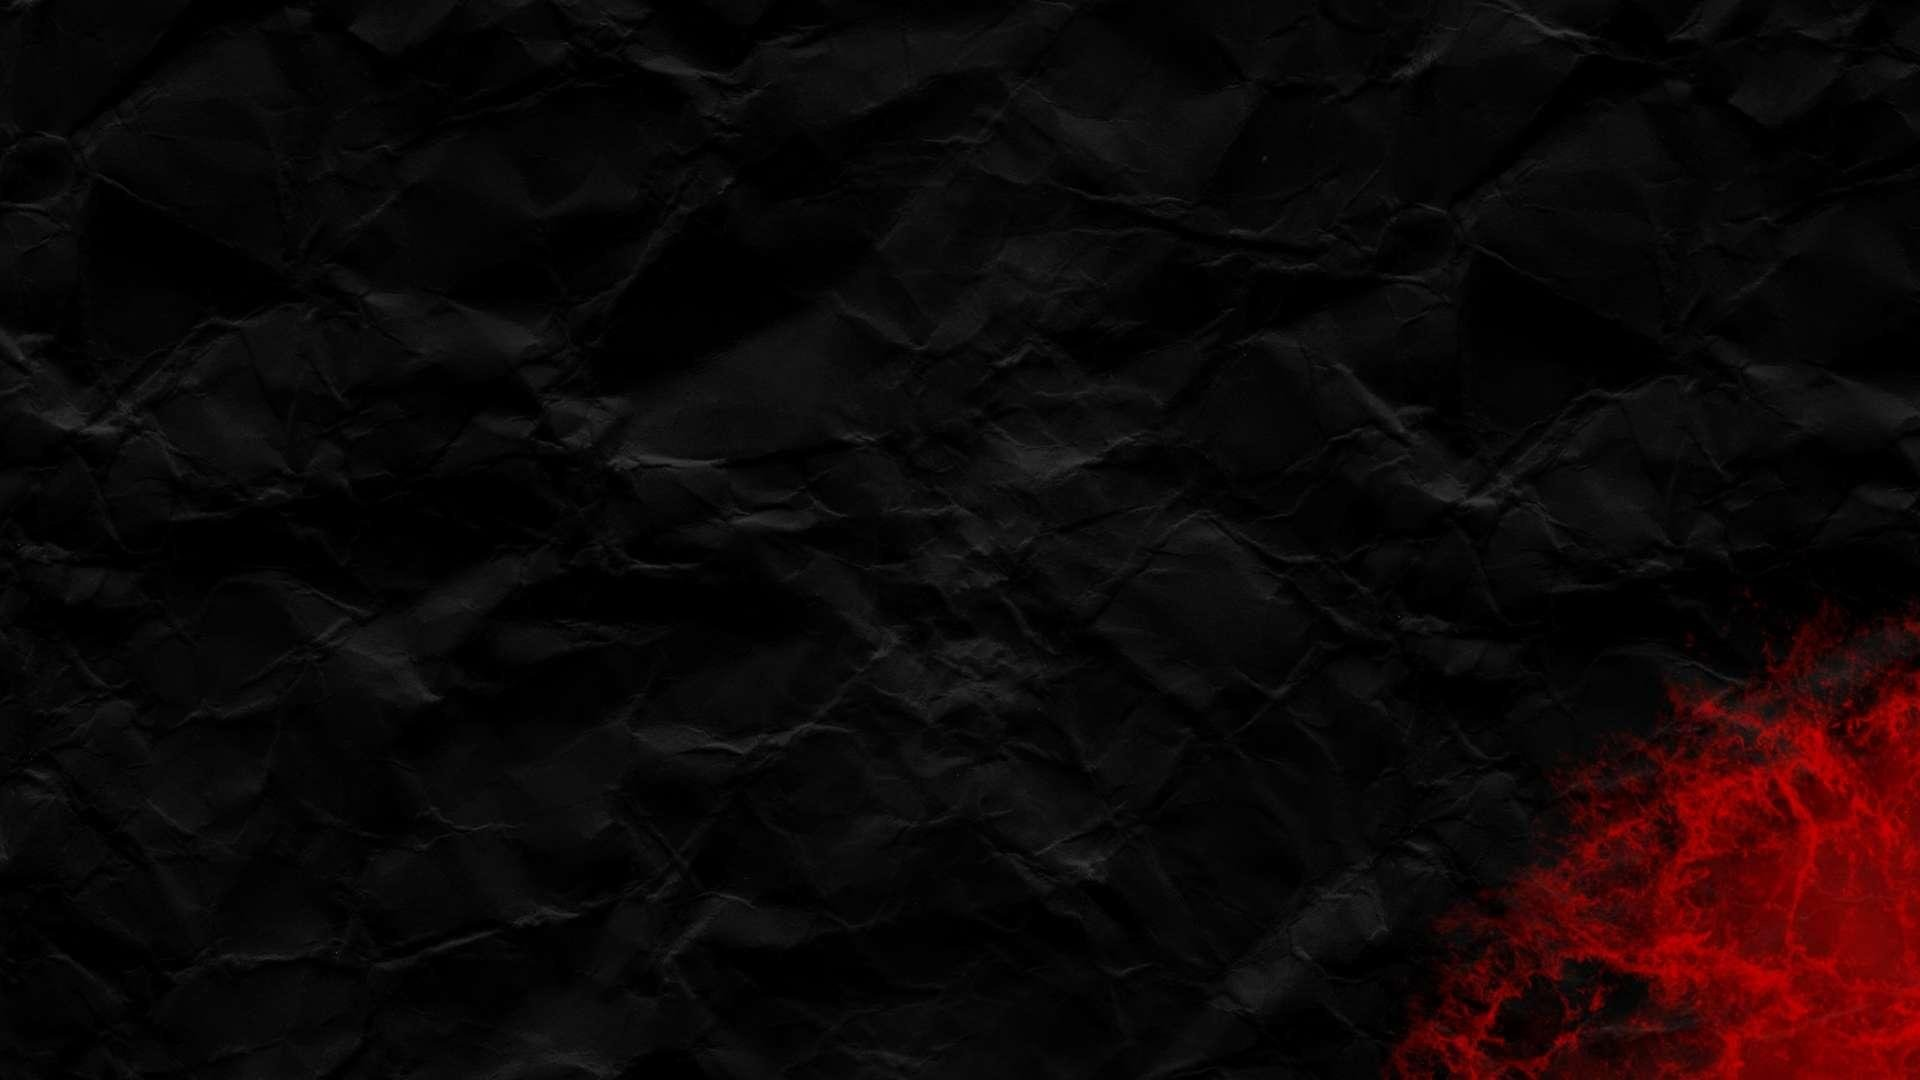 Black and Red Abstract Wallpaper (56+ images)